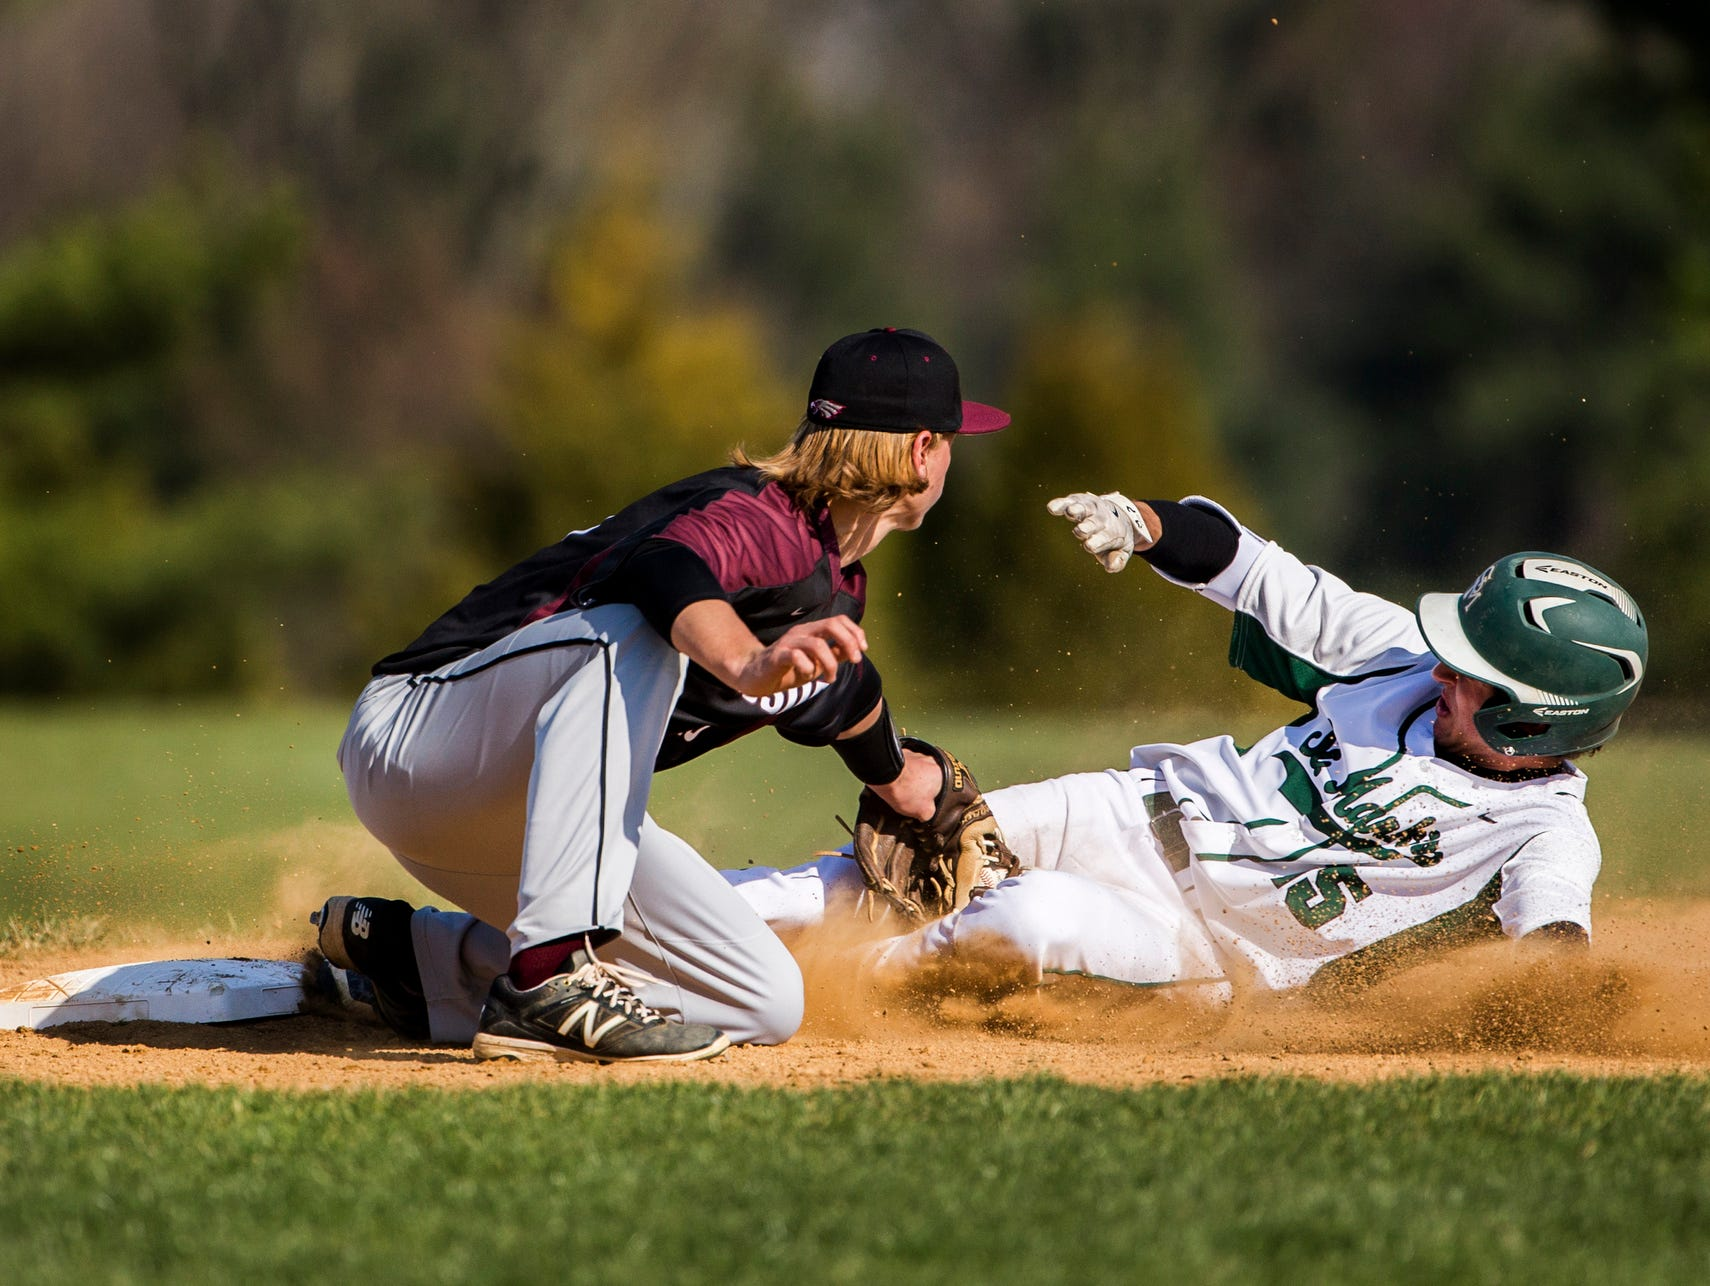 Hodgson's Jonathan Megginson tags St. Mark's Matthew Theodorakis out at third base in St. Mark's 12-0 win over Hodgson at St. Mark's High School on Wednesday afternoon.